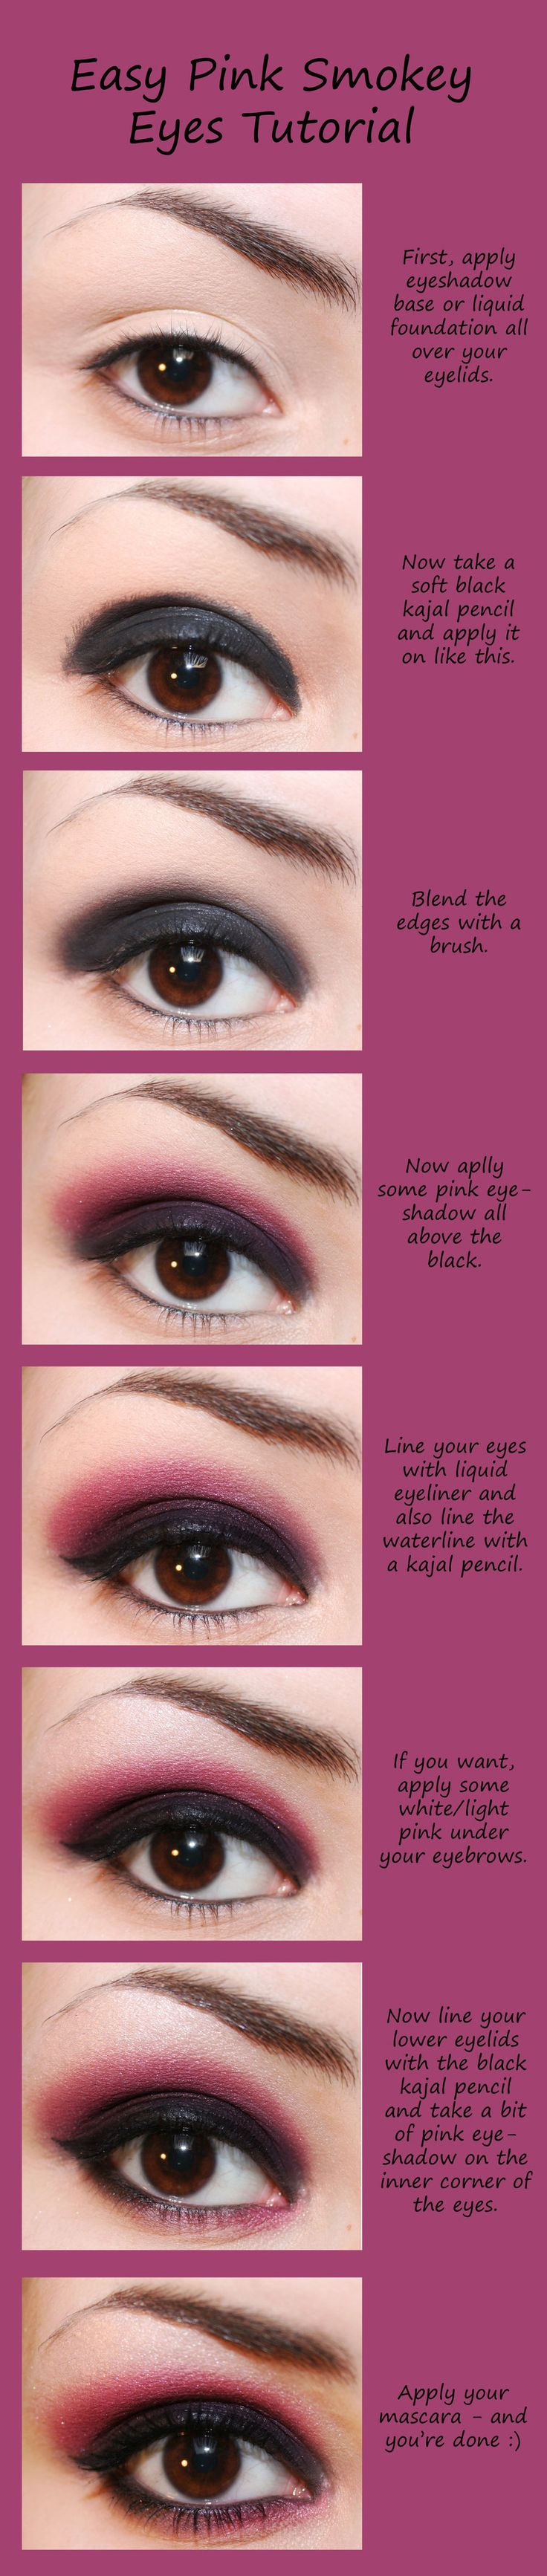 Easy Pink Smokey Eye Tutorial